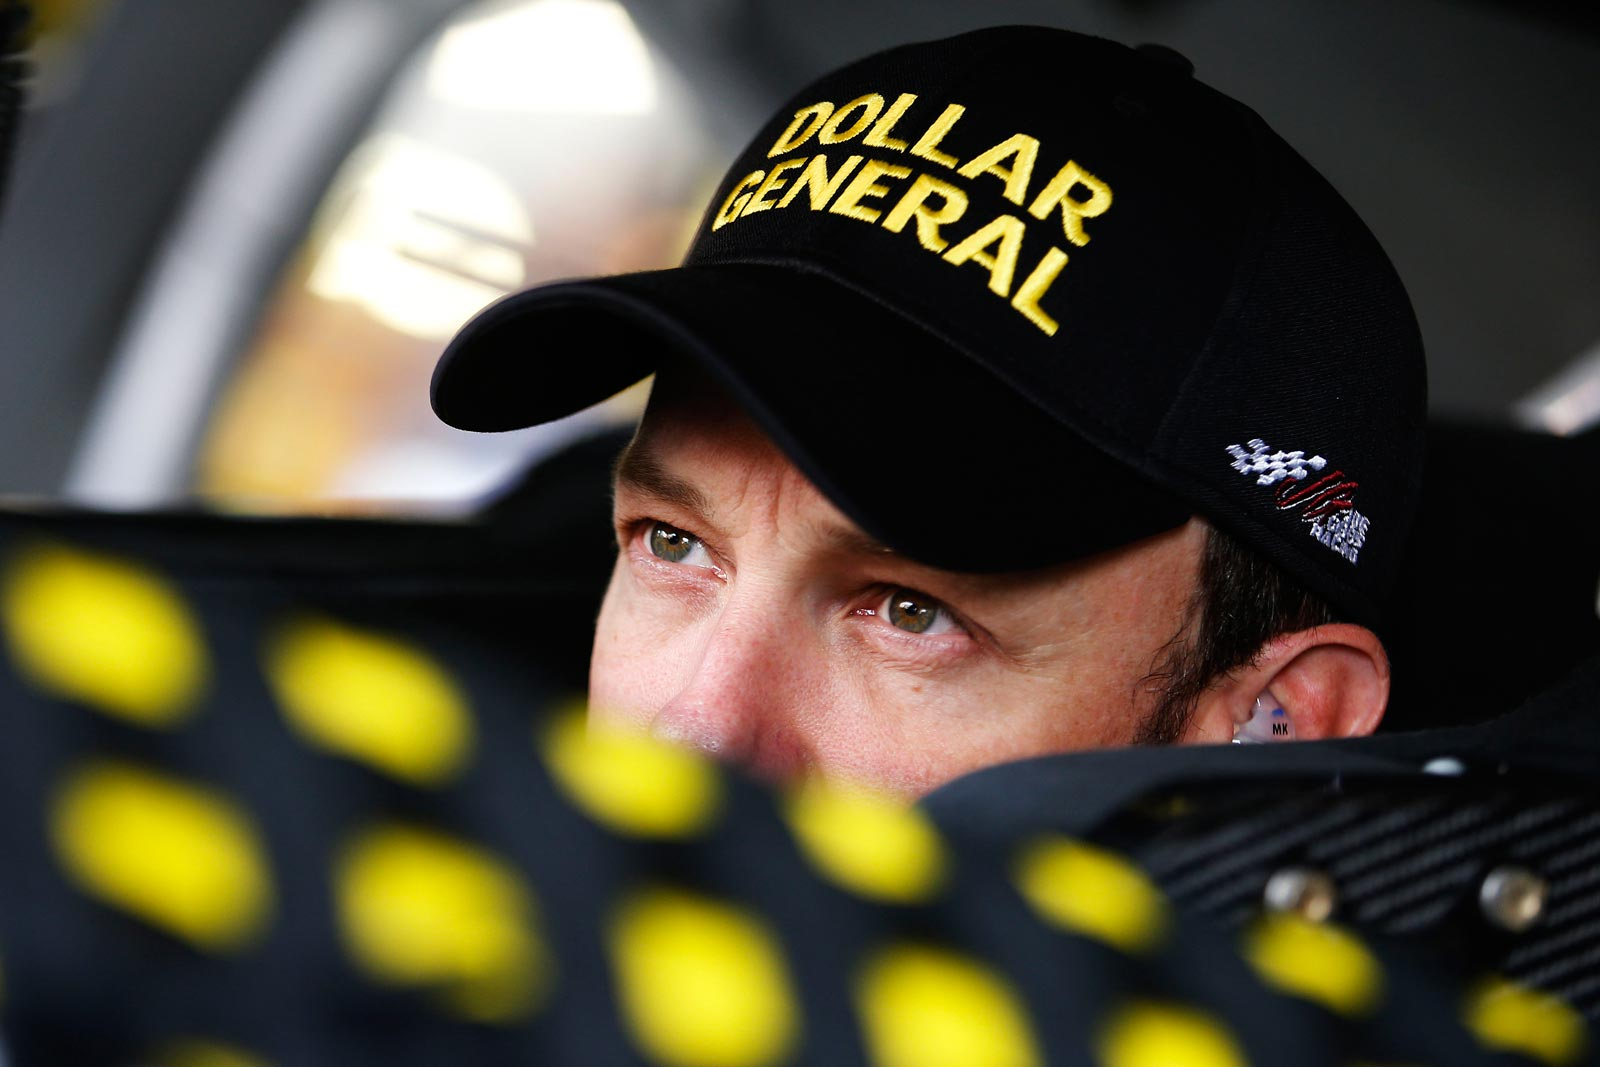 kansas-matt-kenseth